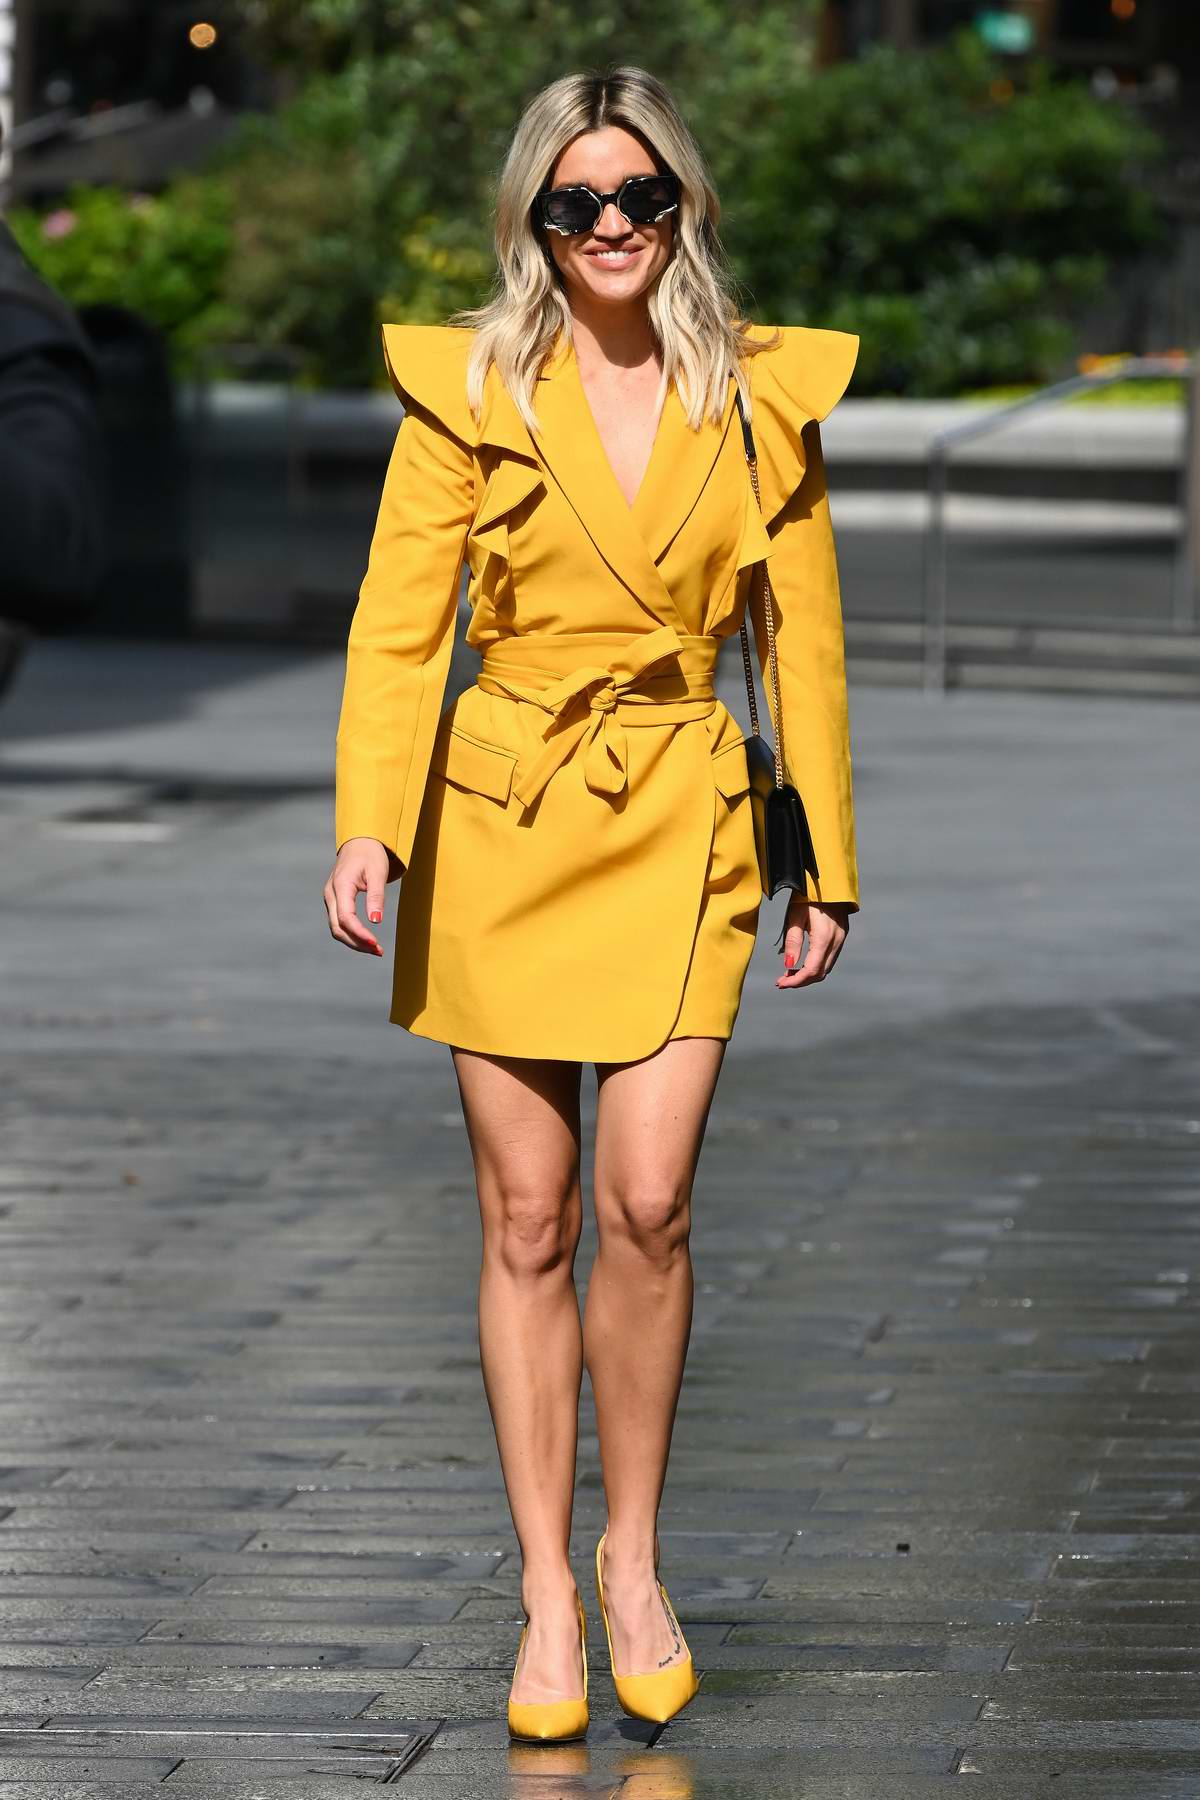 Ashley Roberts looks striking in a yellow dress and matching heels as she leaves Global Radio in London, UK